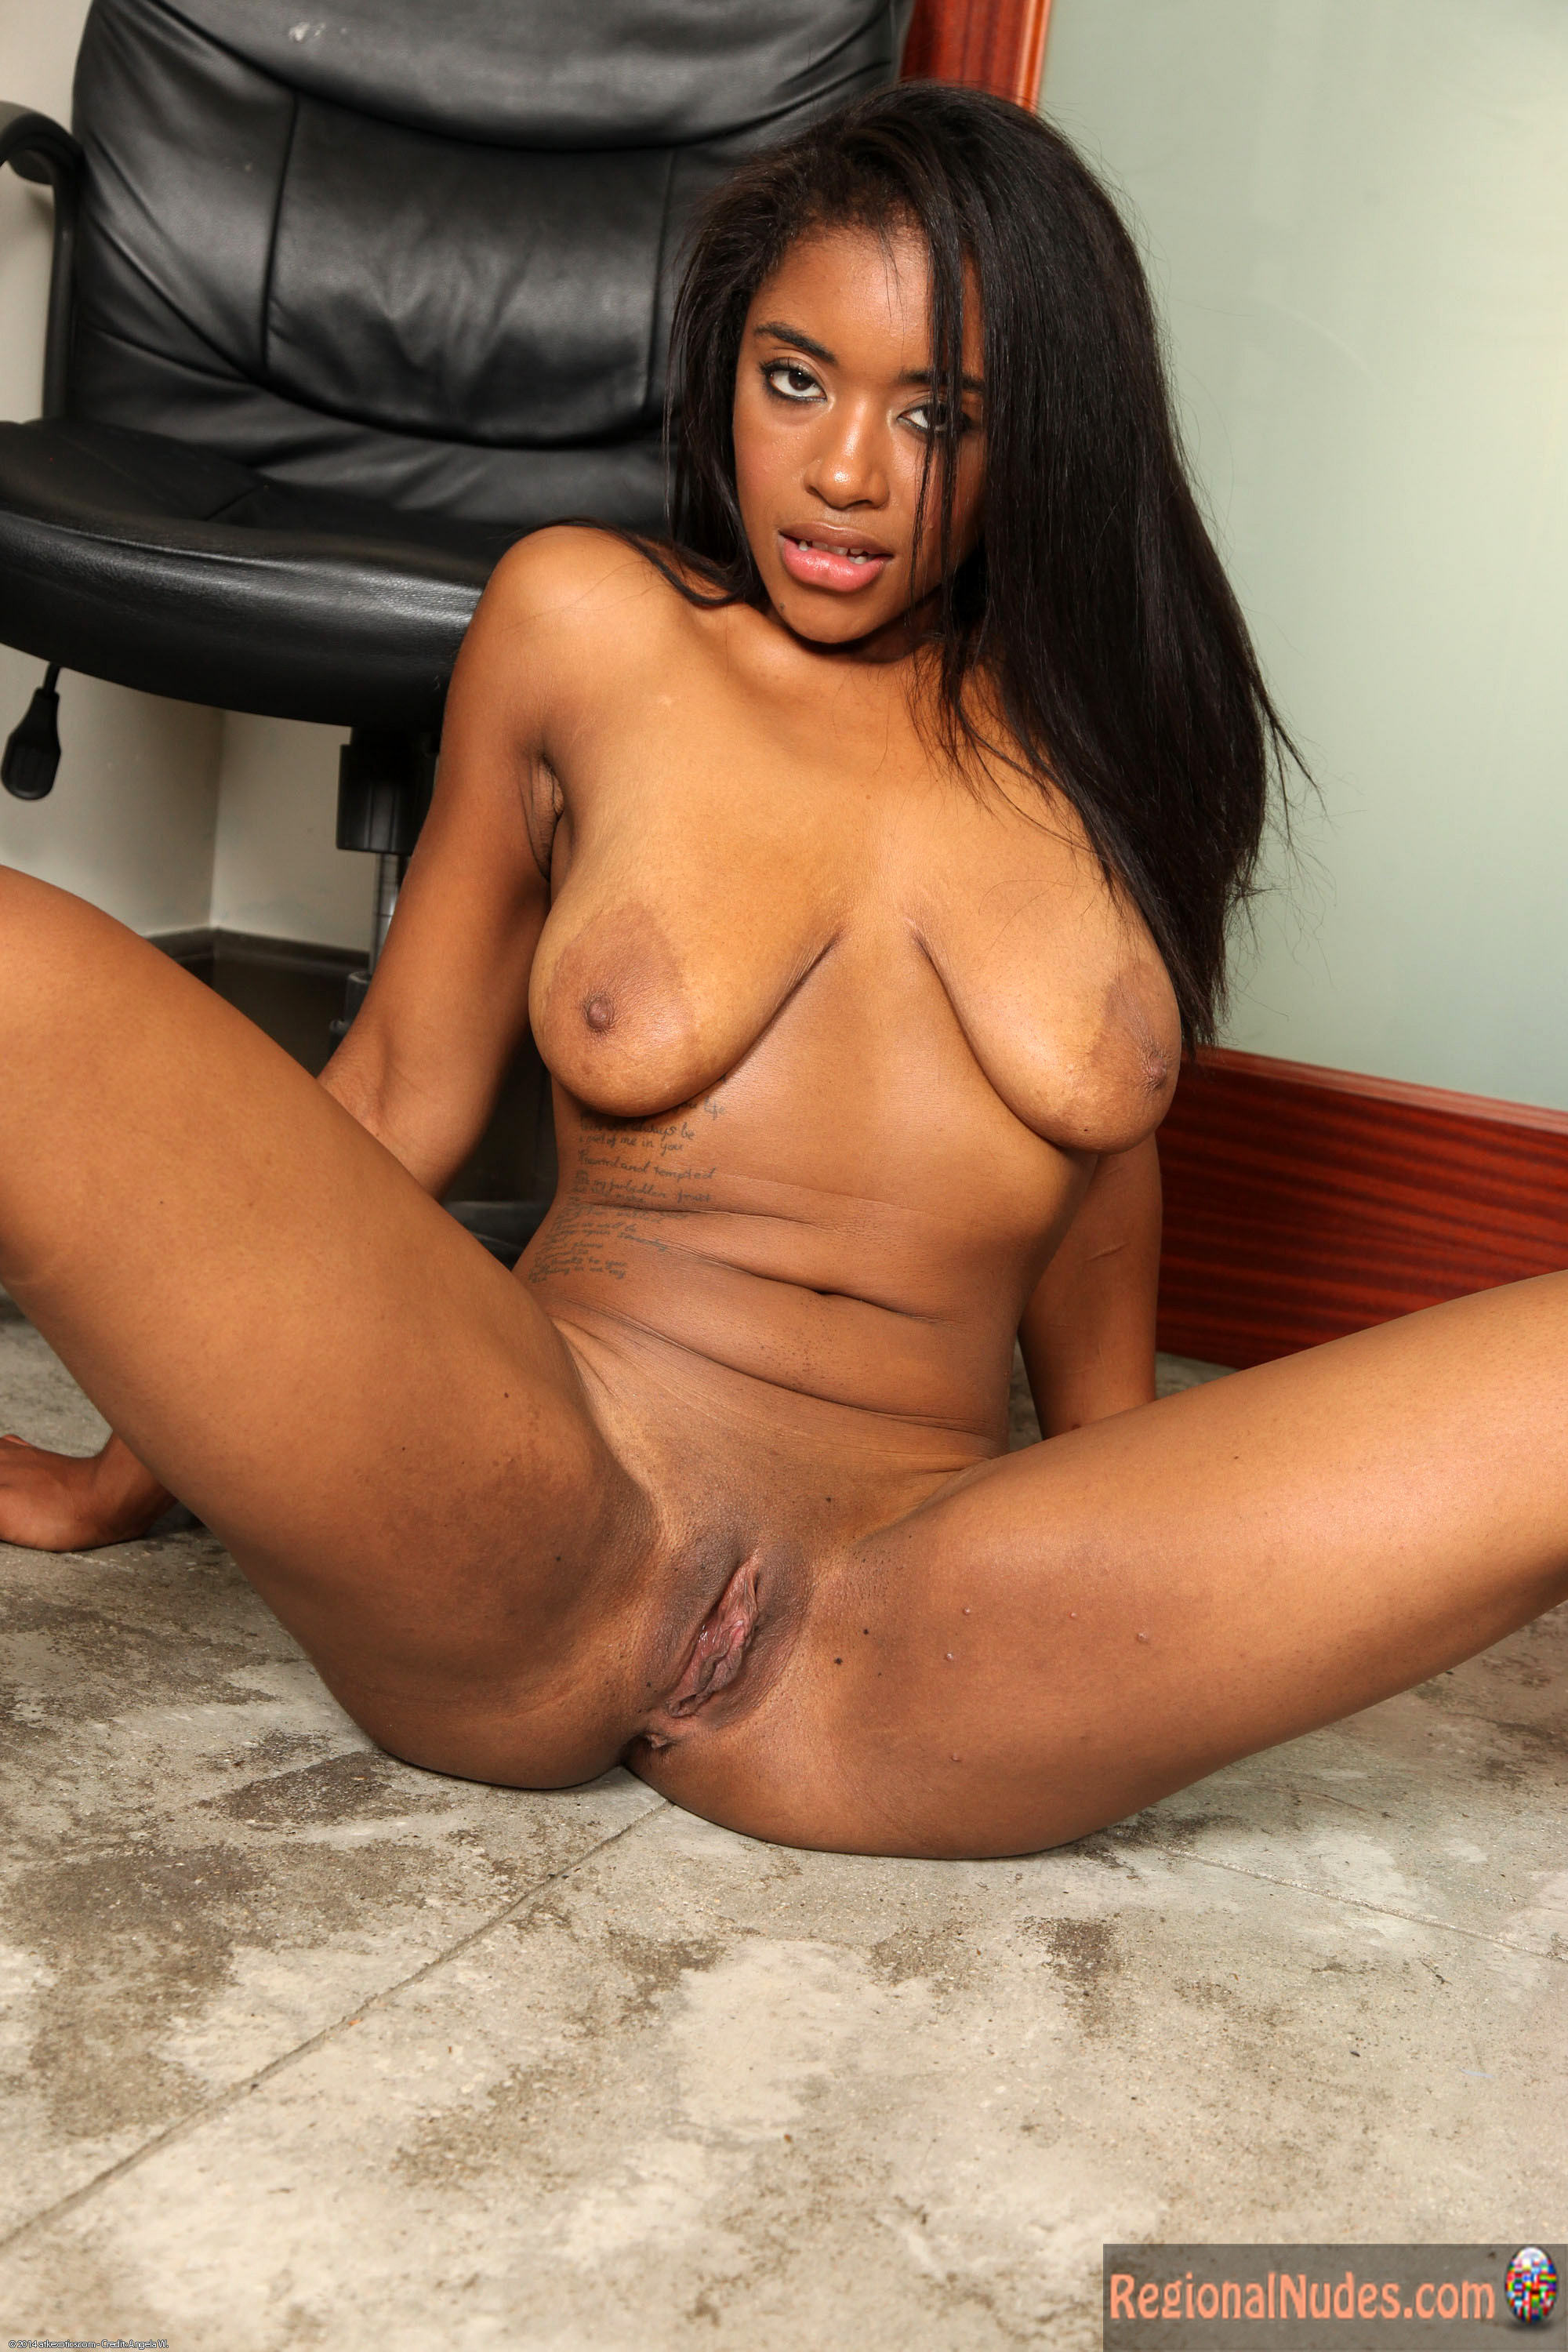 Black American Slut Full Naked Body  Regional Nude Women -9954